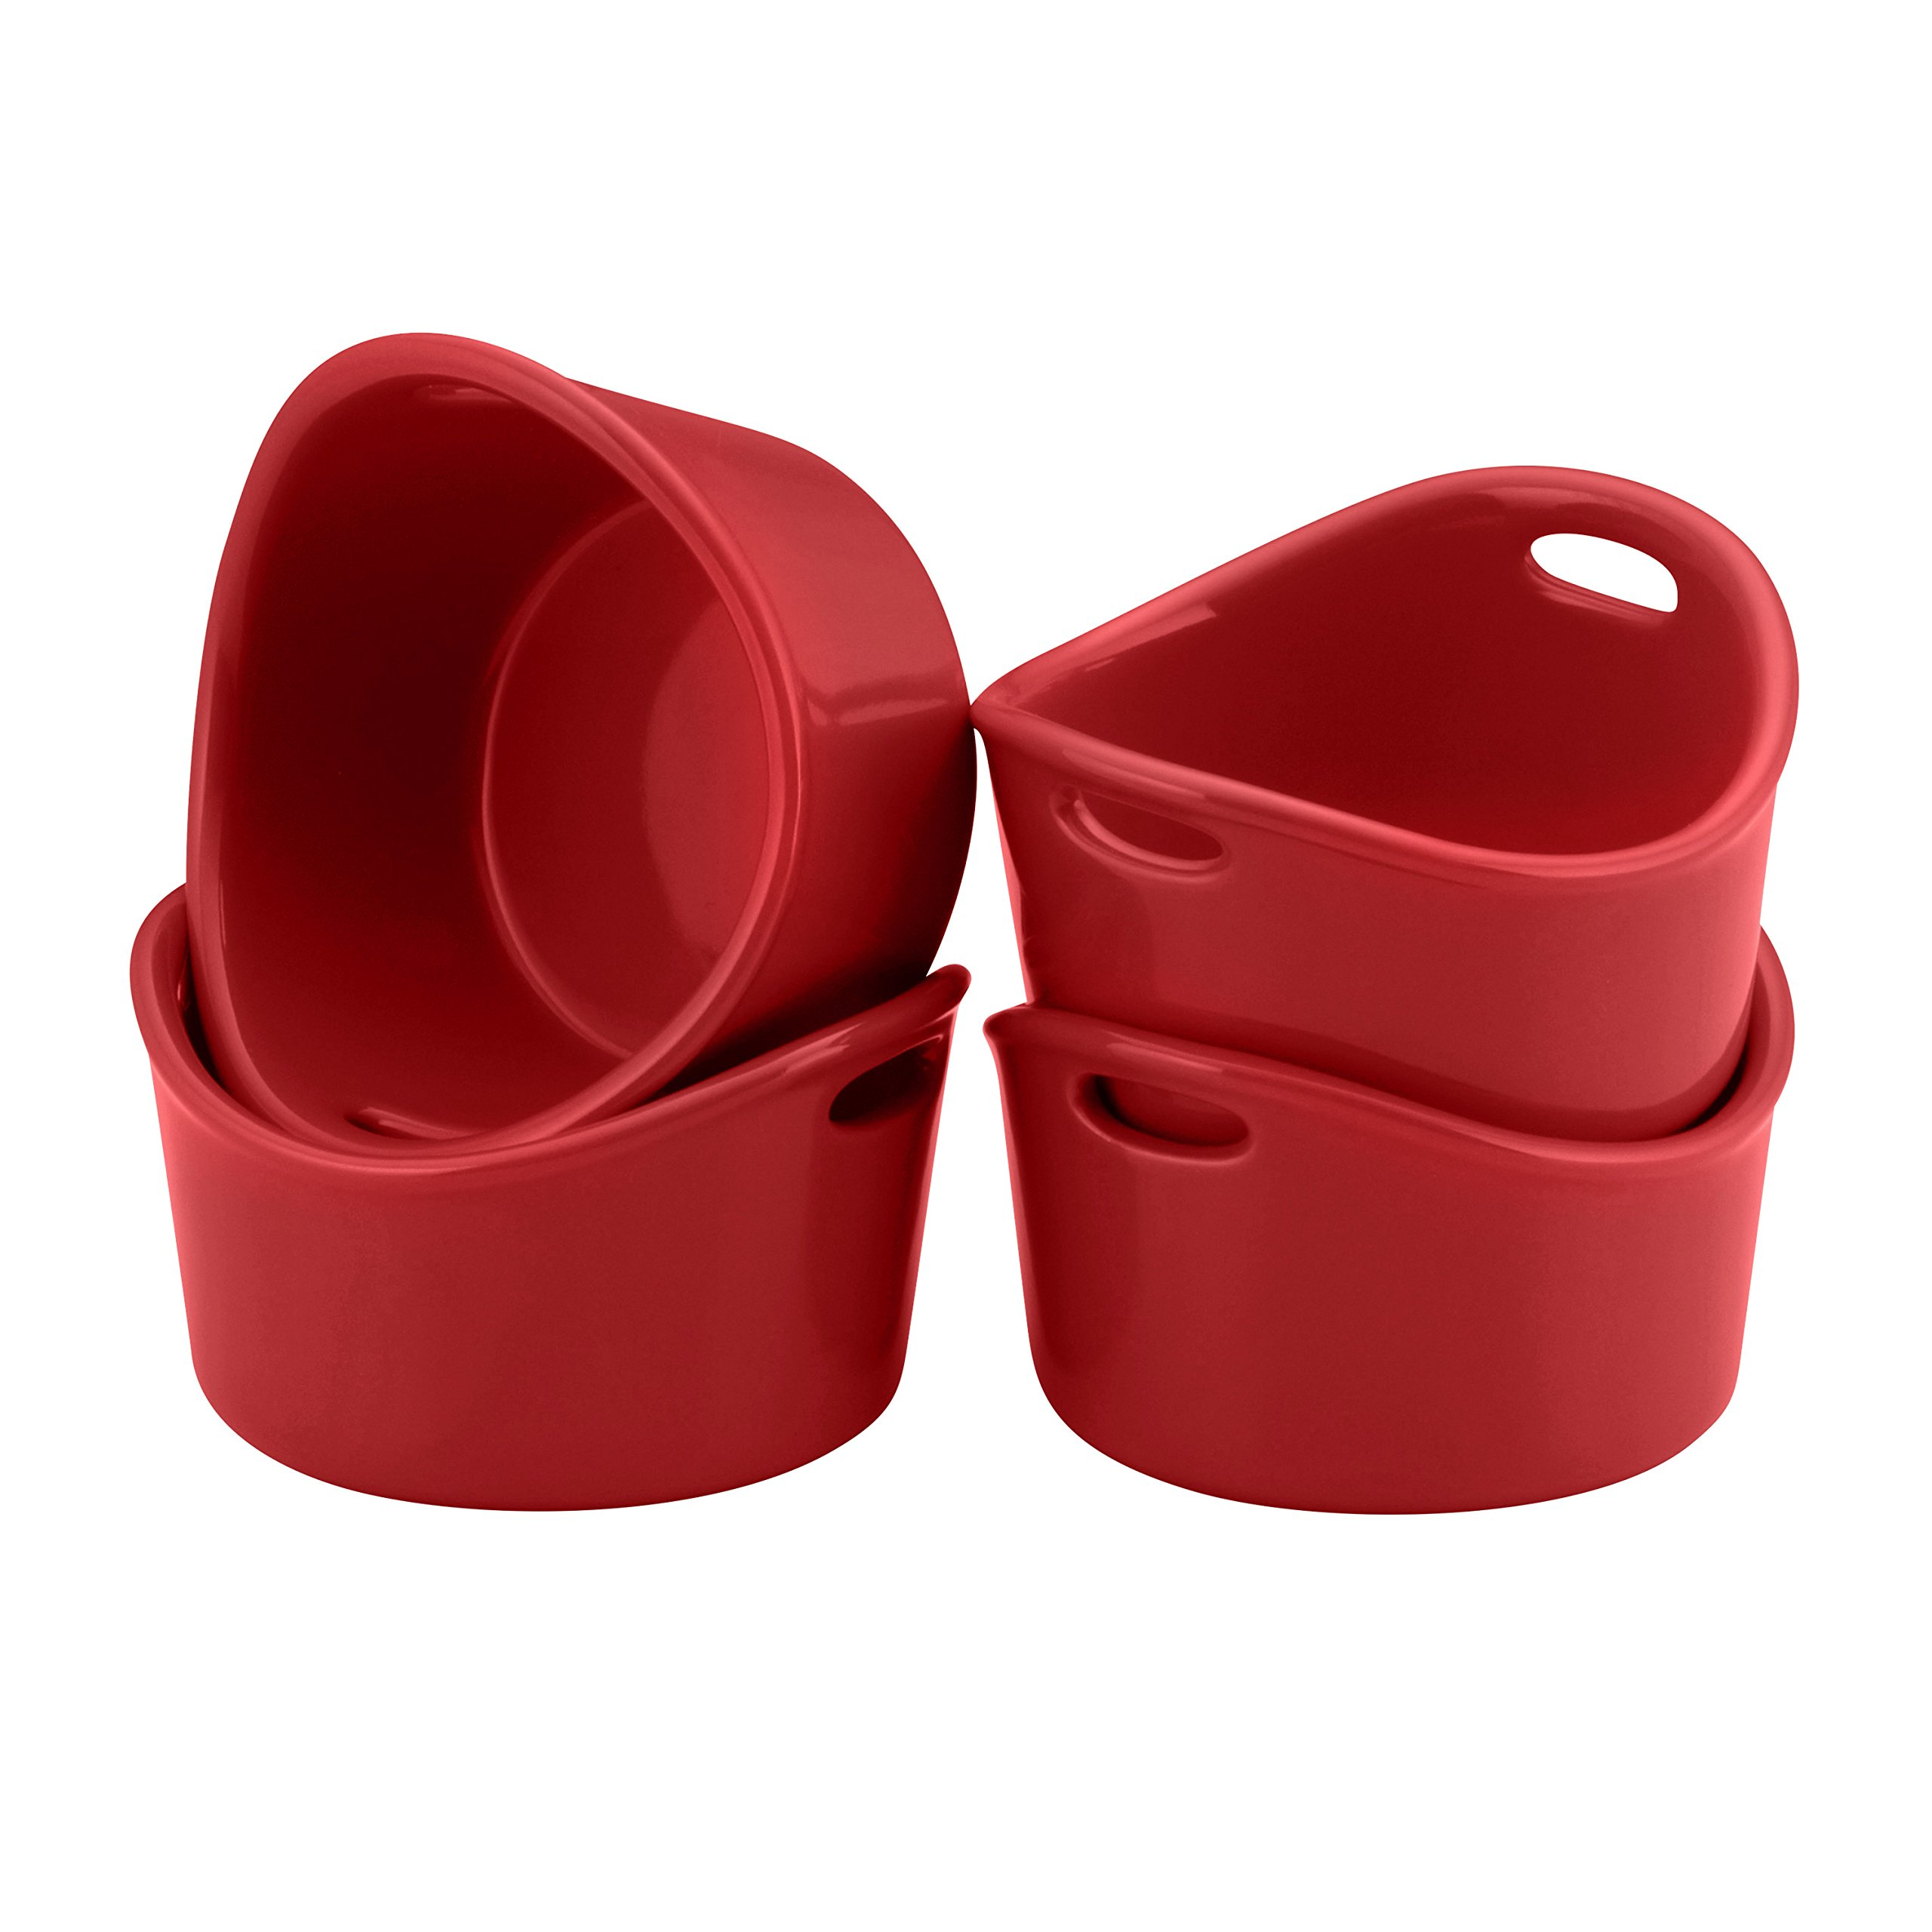 Rachael Ray Stoneware 4-Piece Bubble & Brown Ramekin Set, Red